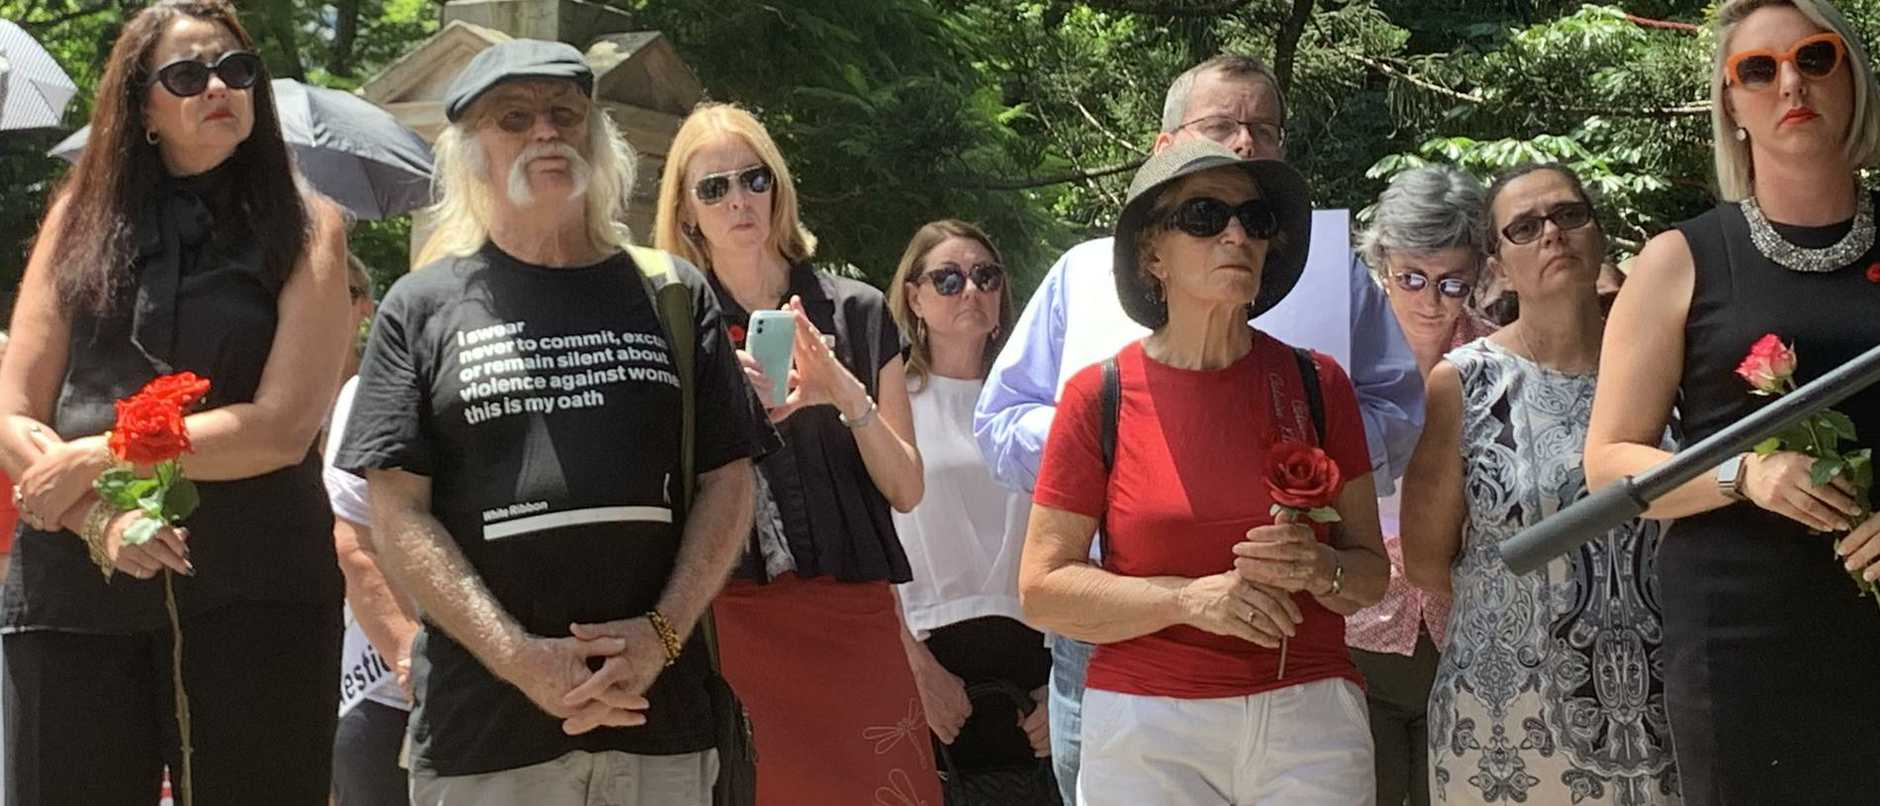 Community and political leaders have united at the Red Rose Rally, demanding action on domestic violence laws in the aftermath of the Camp Hill murders.